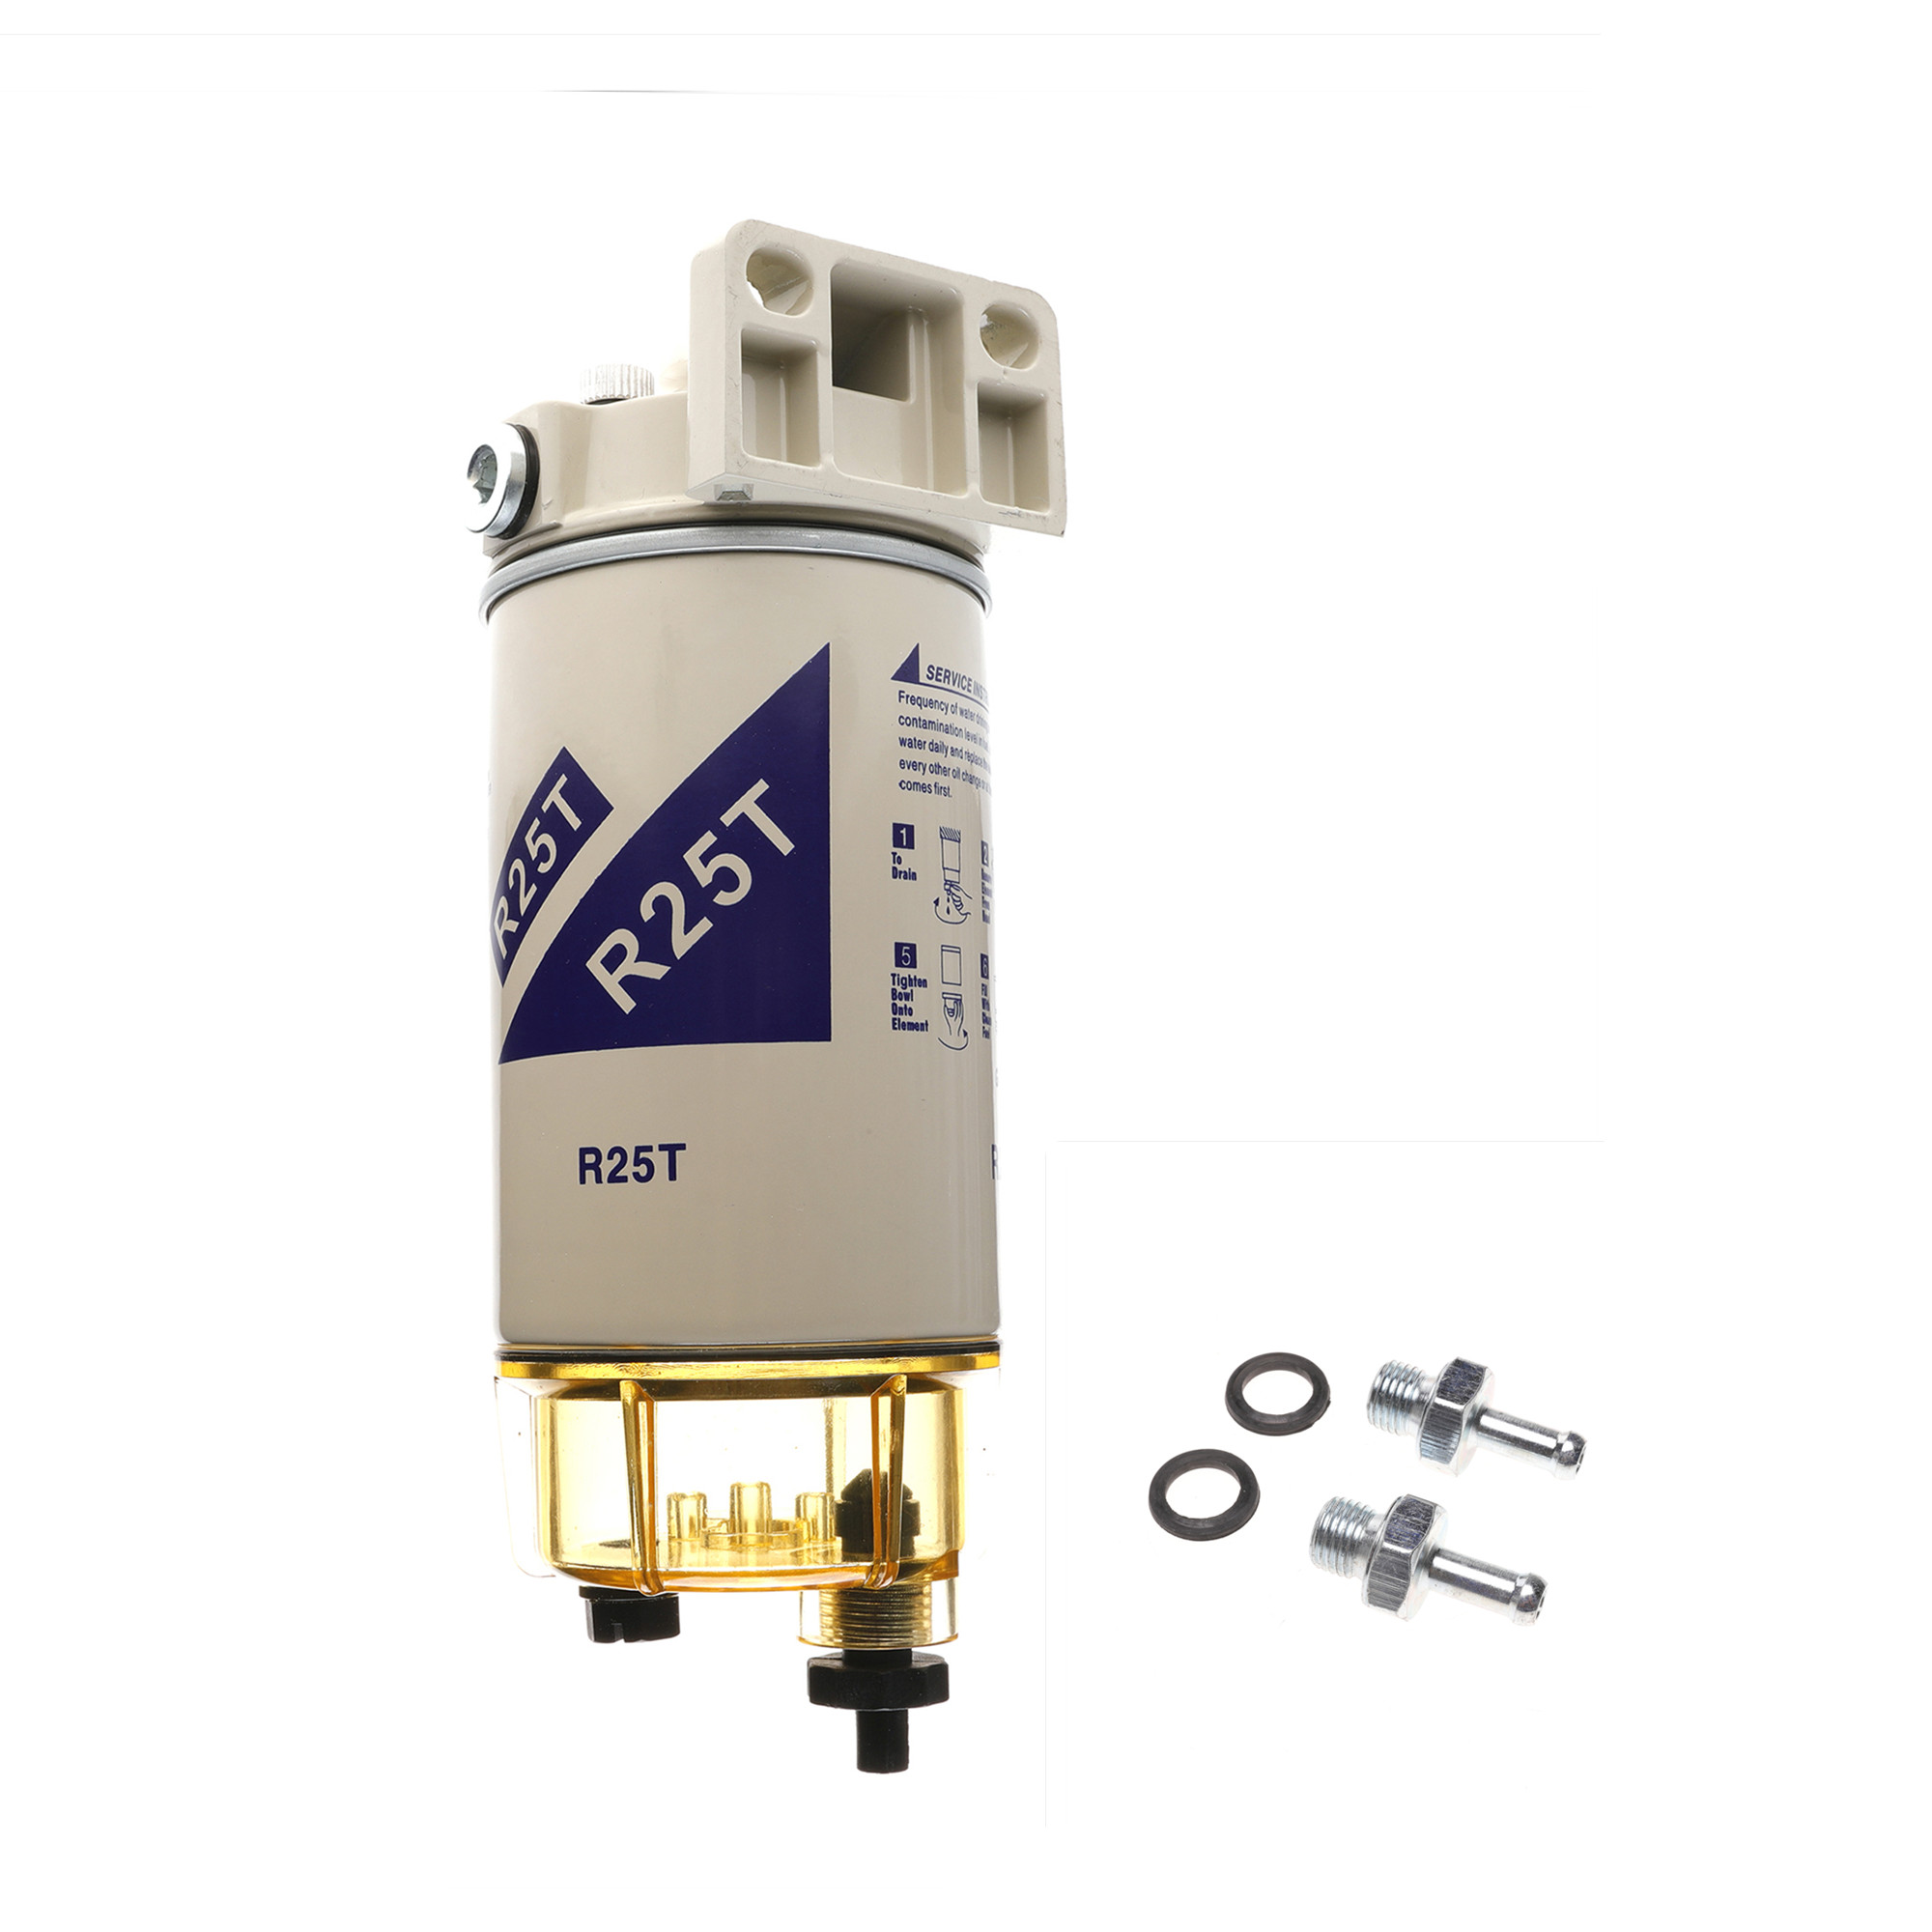 R25T Spin on Fuel Filter Water Marine Separator Replaces Racor 320R Rac 01